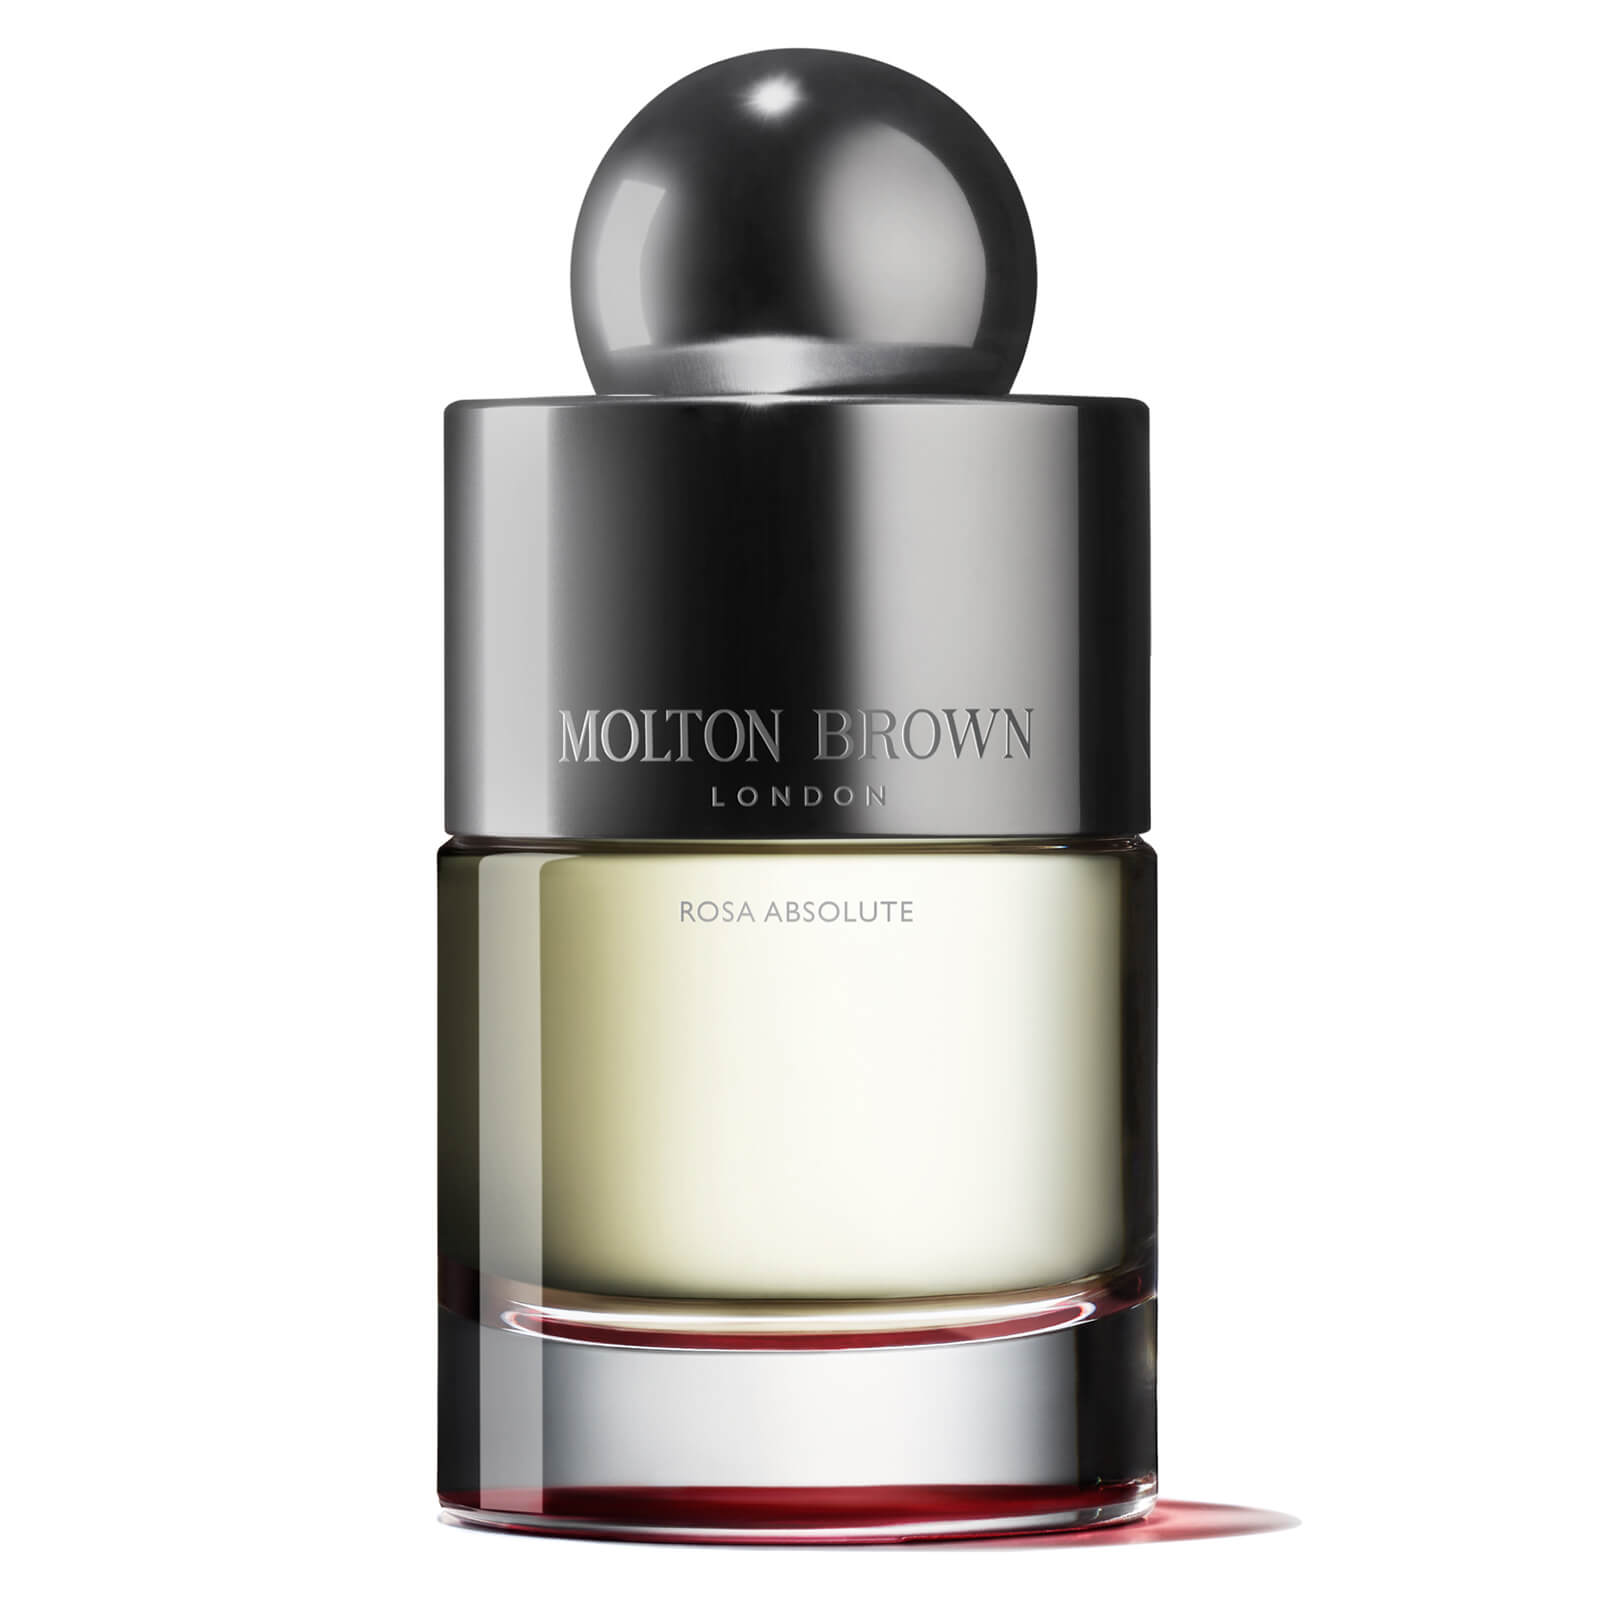 Molton Brown Rosa Absolute Eau de Toilette (Various Sizes) - 100ml